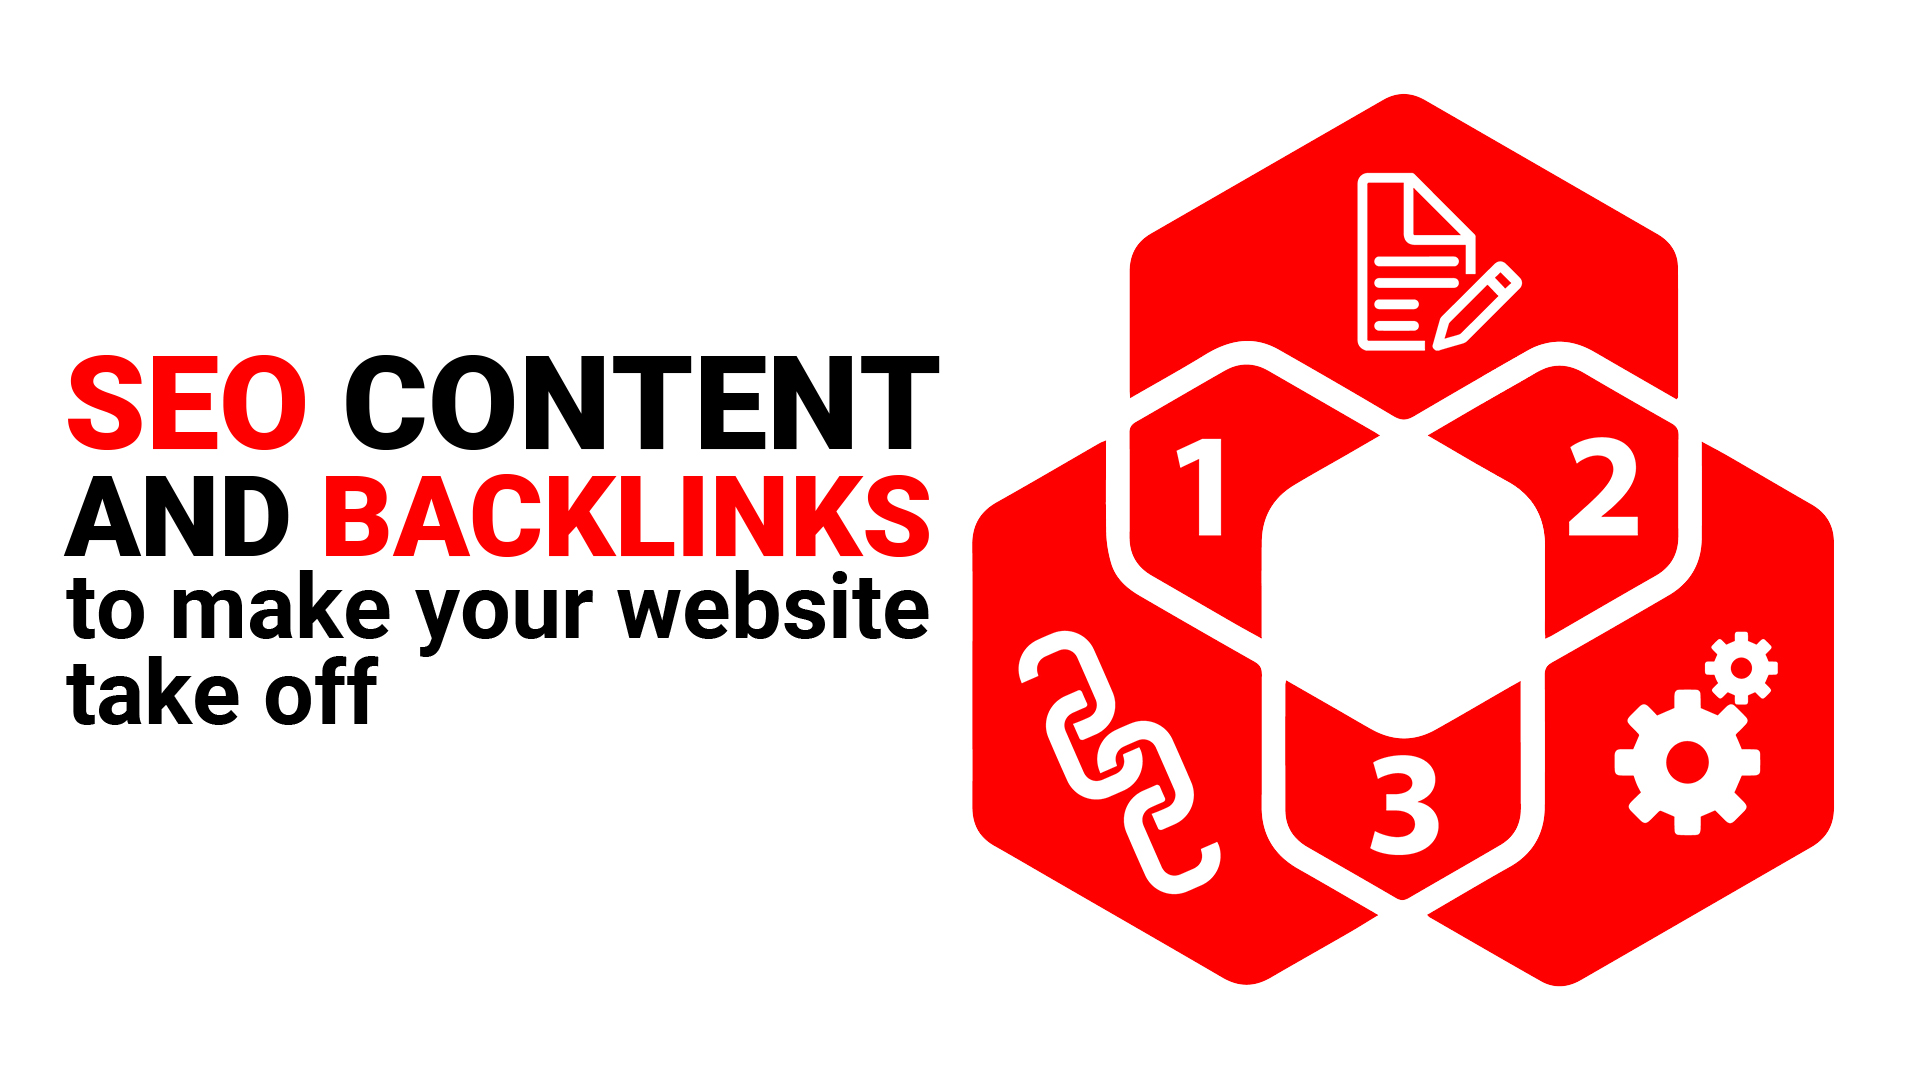 SEO Content and backlinks to make your website take off